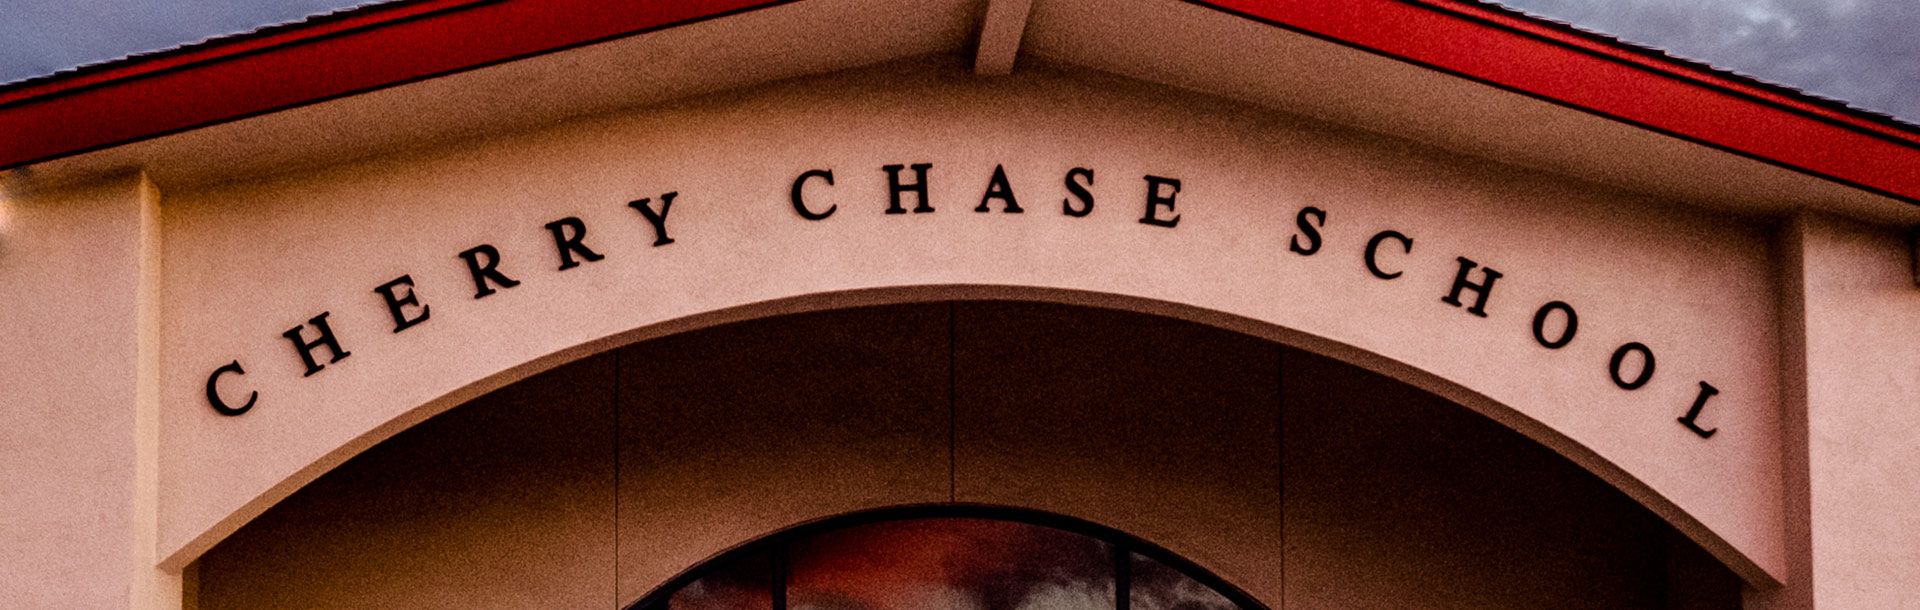 Cherry Chase Halloween 2020 Cherry Chase PTA – Making a Difference